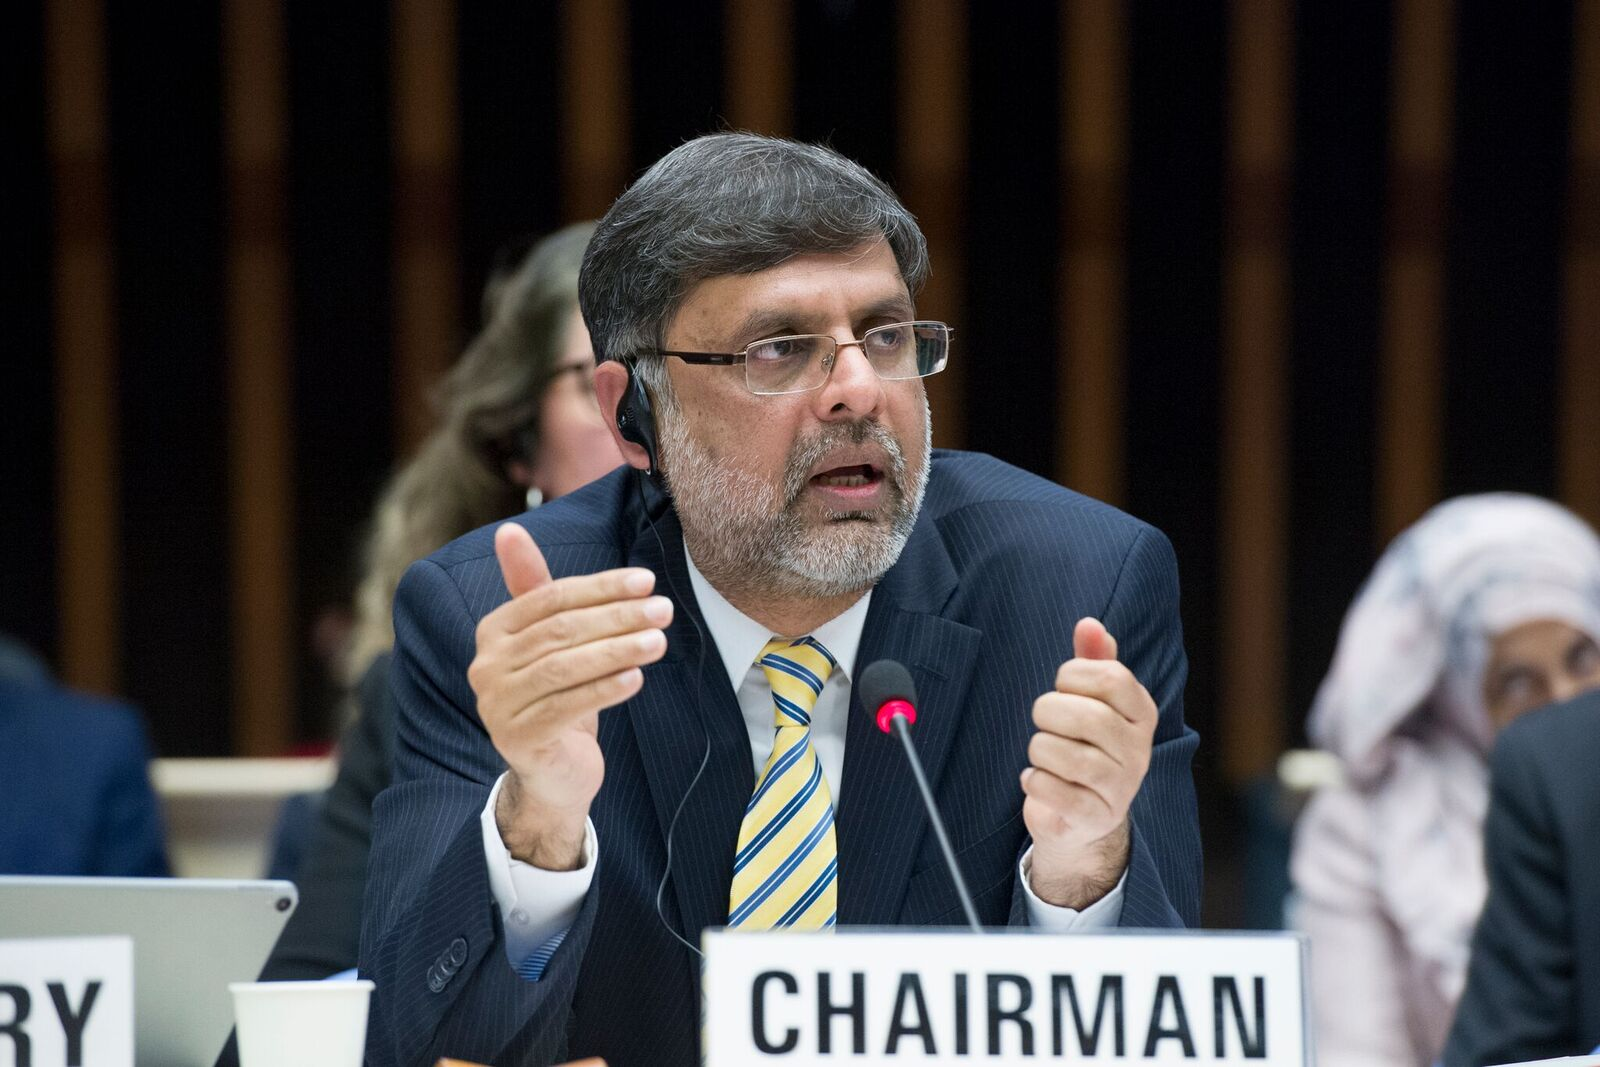 Assad Hafeez, chairman of the WHO EB. Credit: WHO